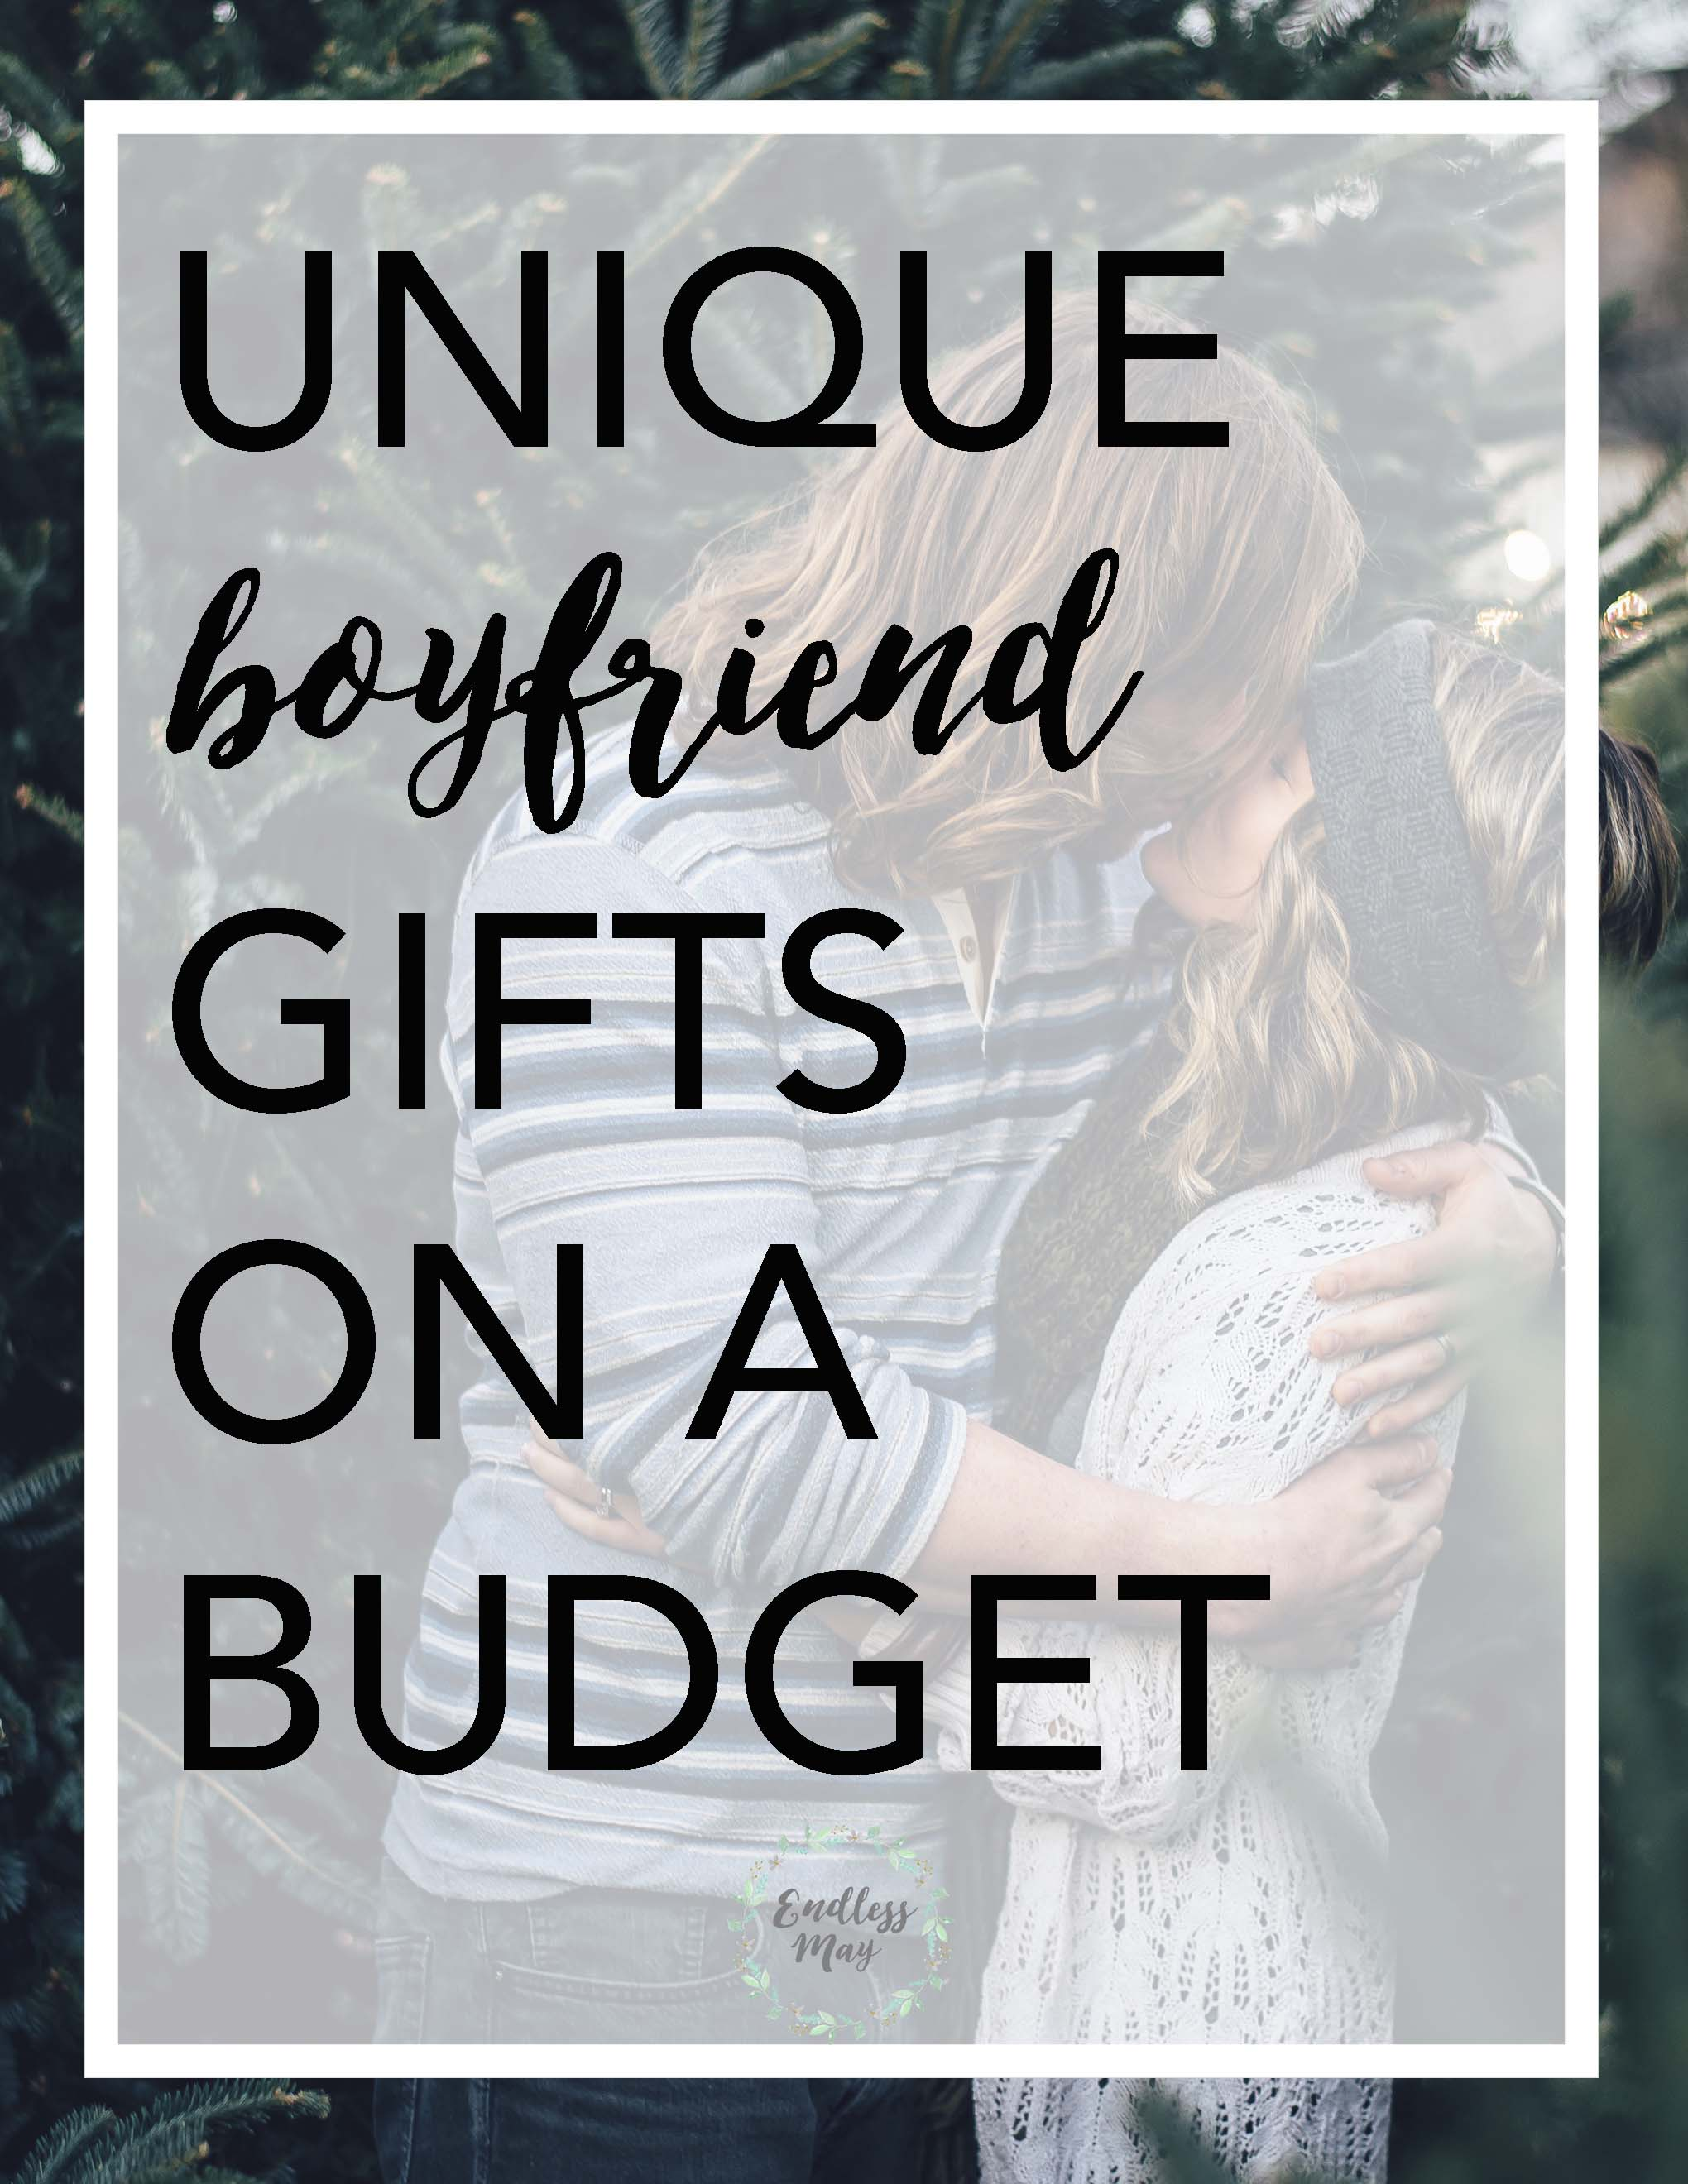 Unique Christmas Gifts For Your Boyfriend On A Budget Endless May